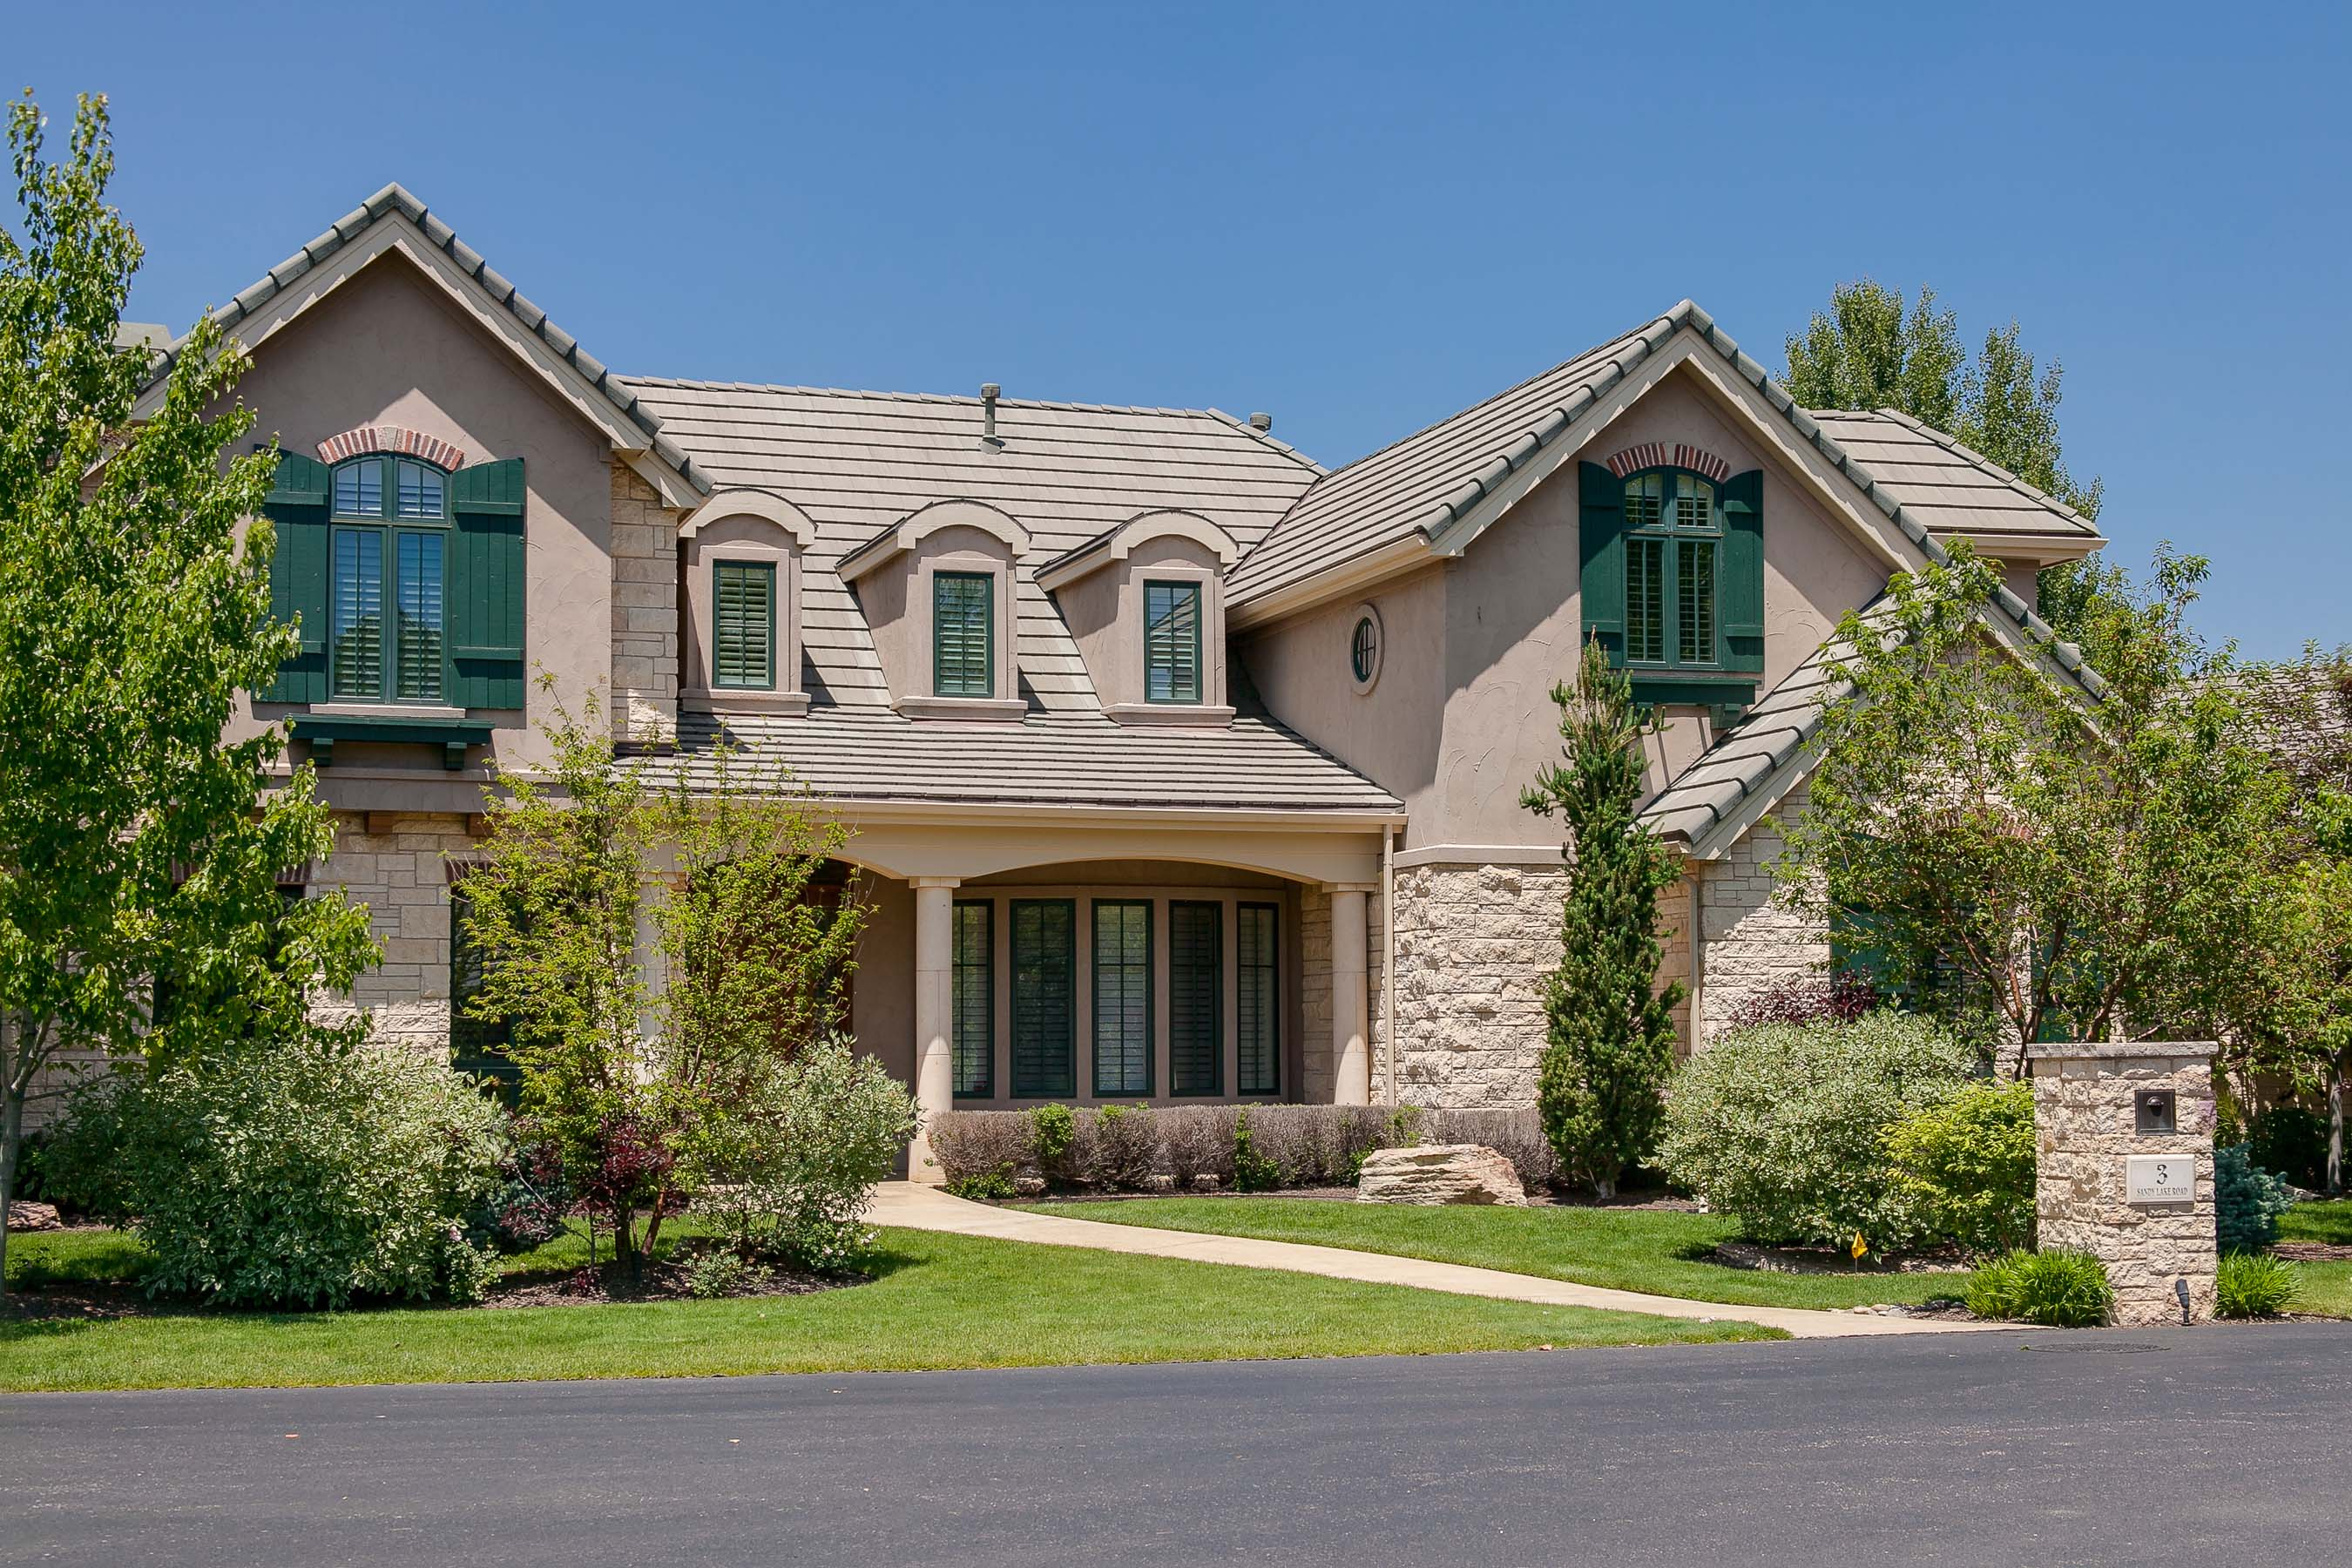 Single Family Home for Sale at Backs to Lake 3 Sandy Lake Rd Cherry Hills Village, Colorado 80113 United States